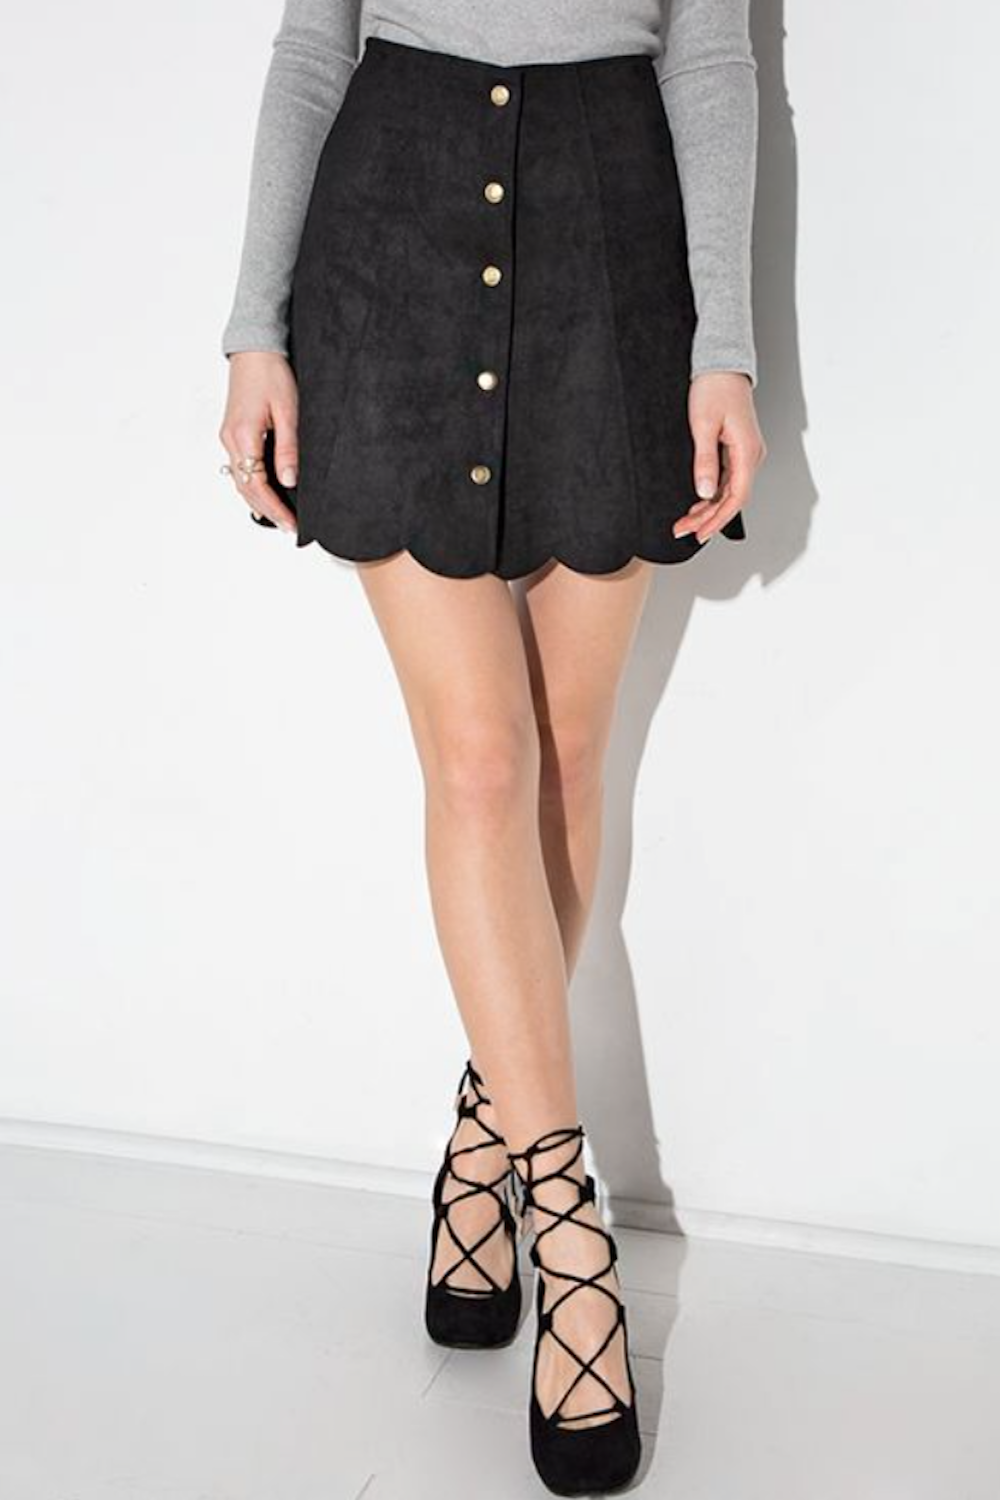 abacdb5b3 Black Suede Mini Skirt with Scalloped Hem Button Down Front Zip Back -  South of Society